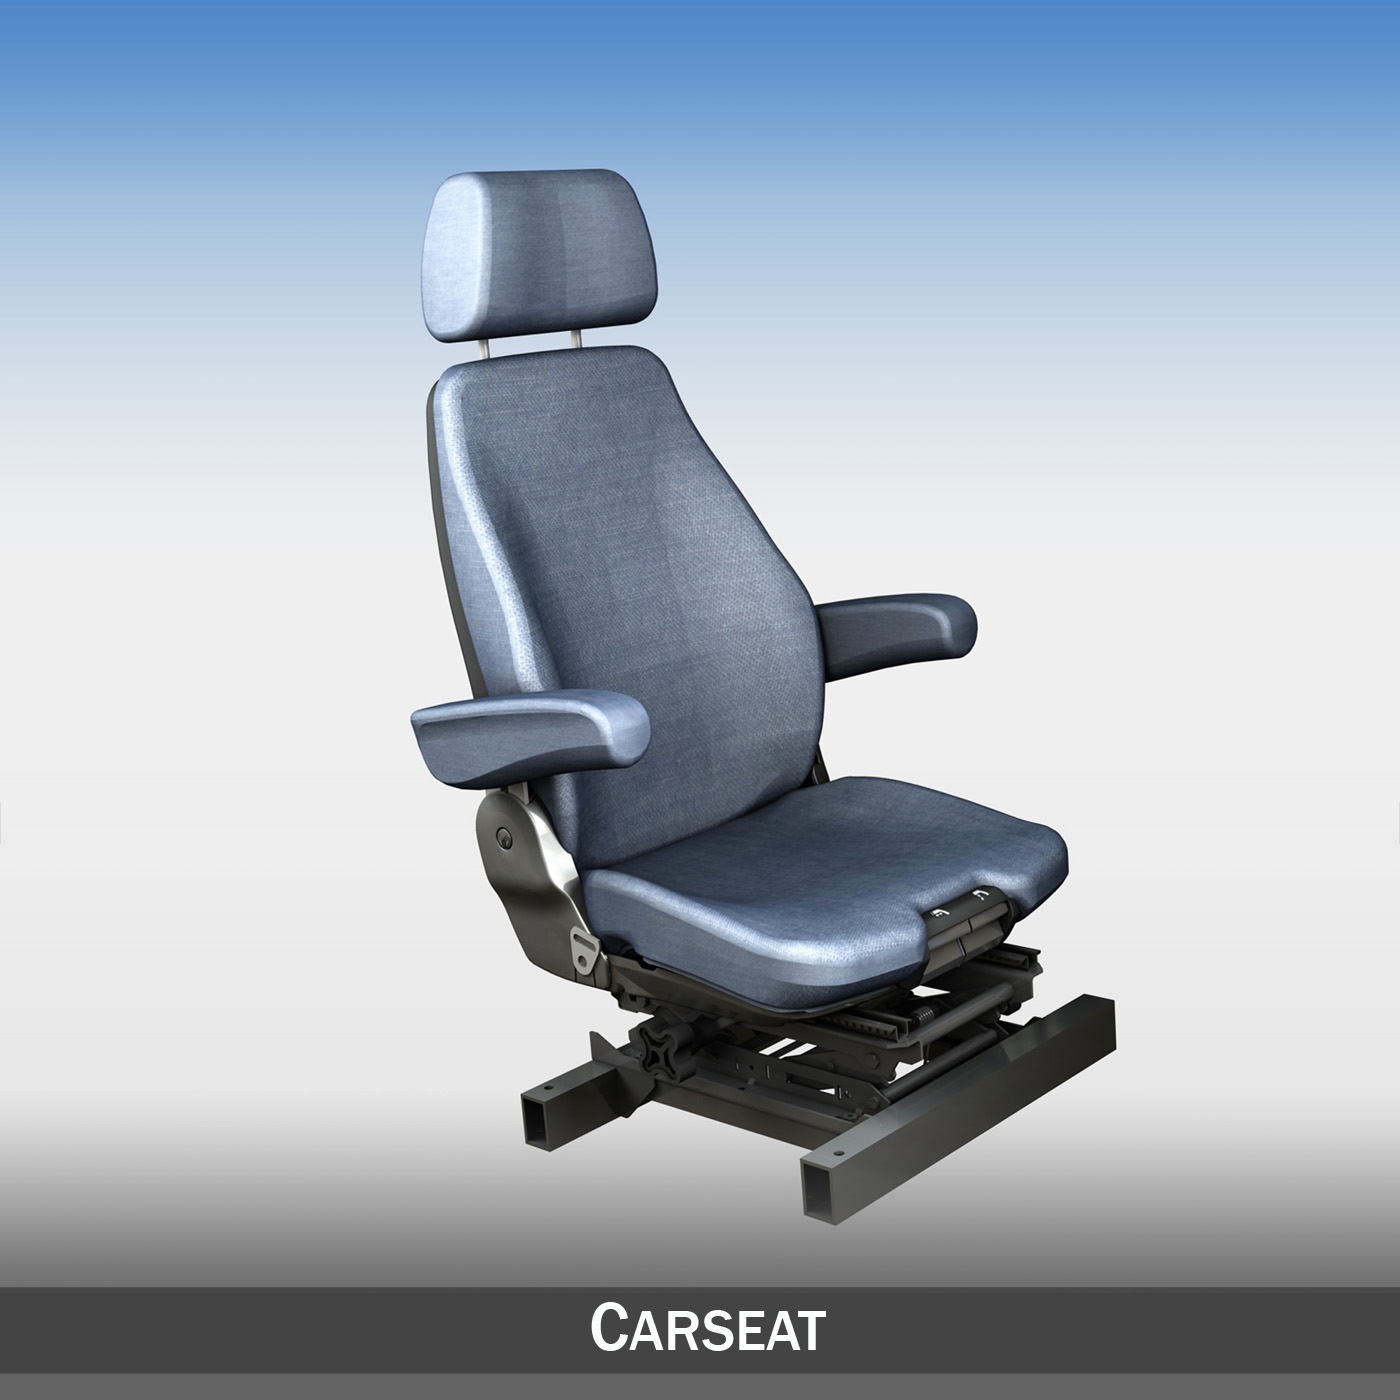 car seat with attachment 3d model 3ds fbx c4d lwo obj 187230